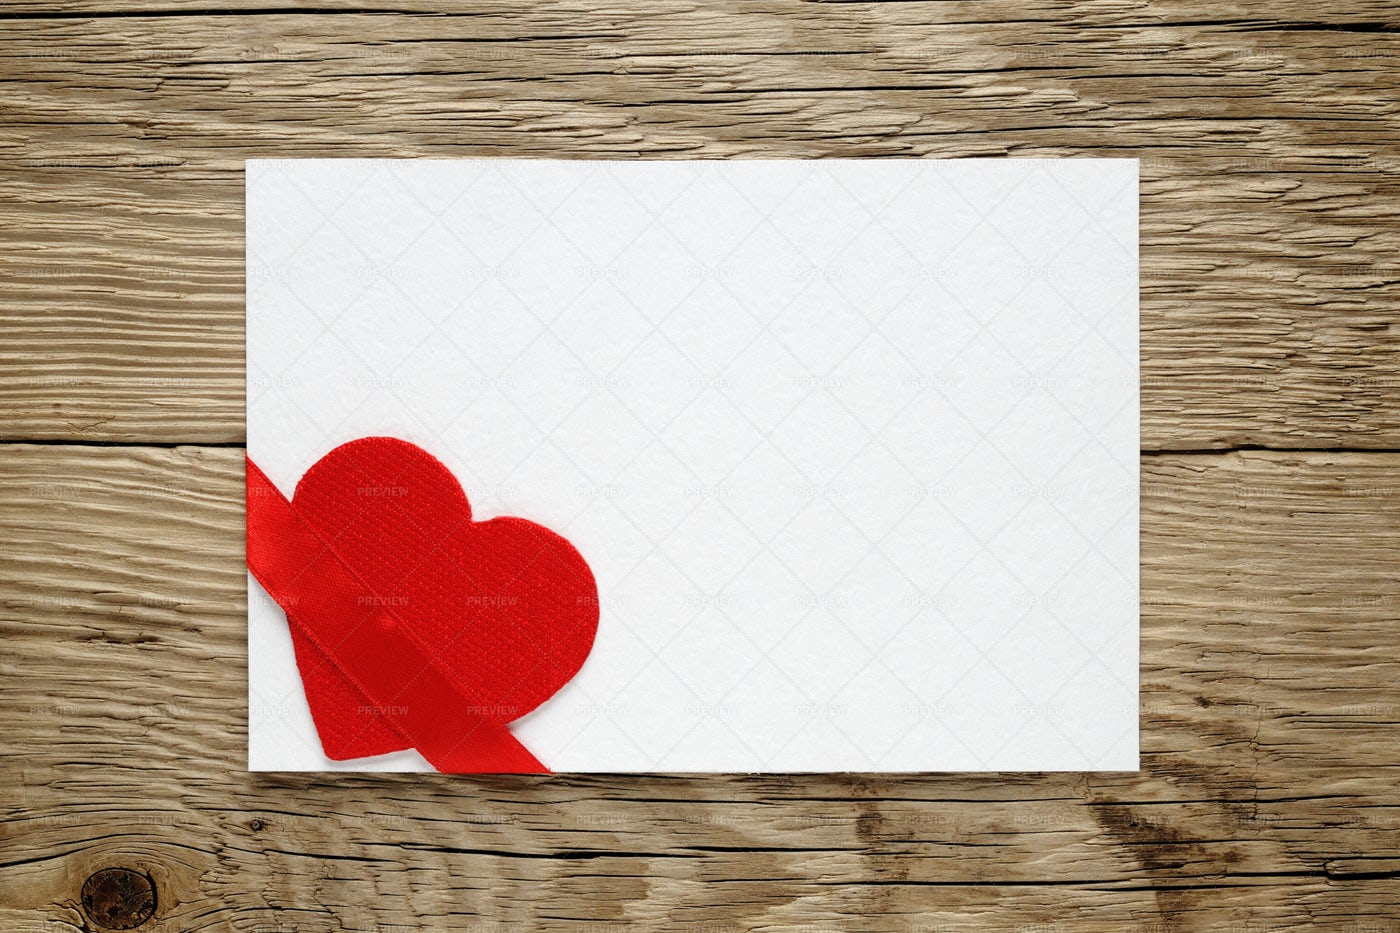 Valentine Card With Red Heart And Ribbon: Stock Photos